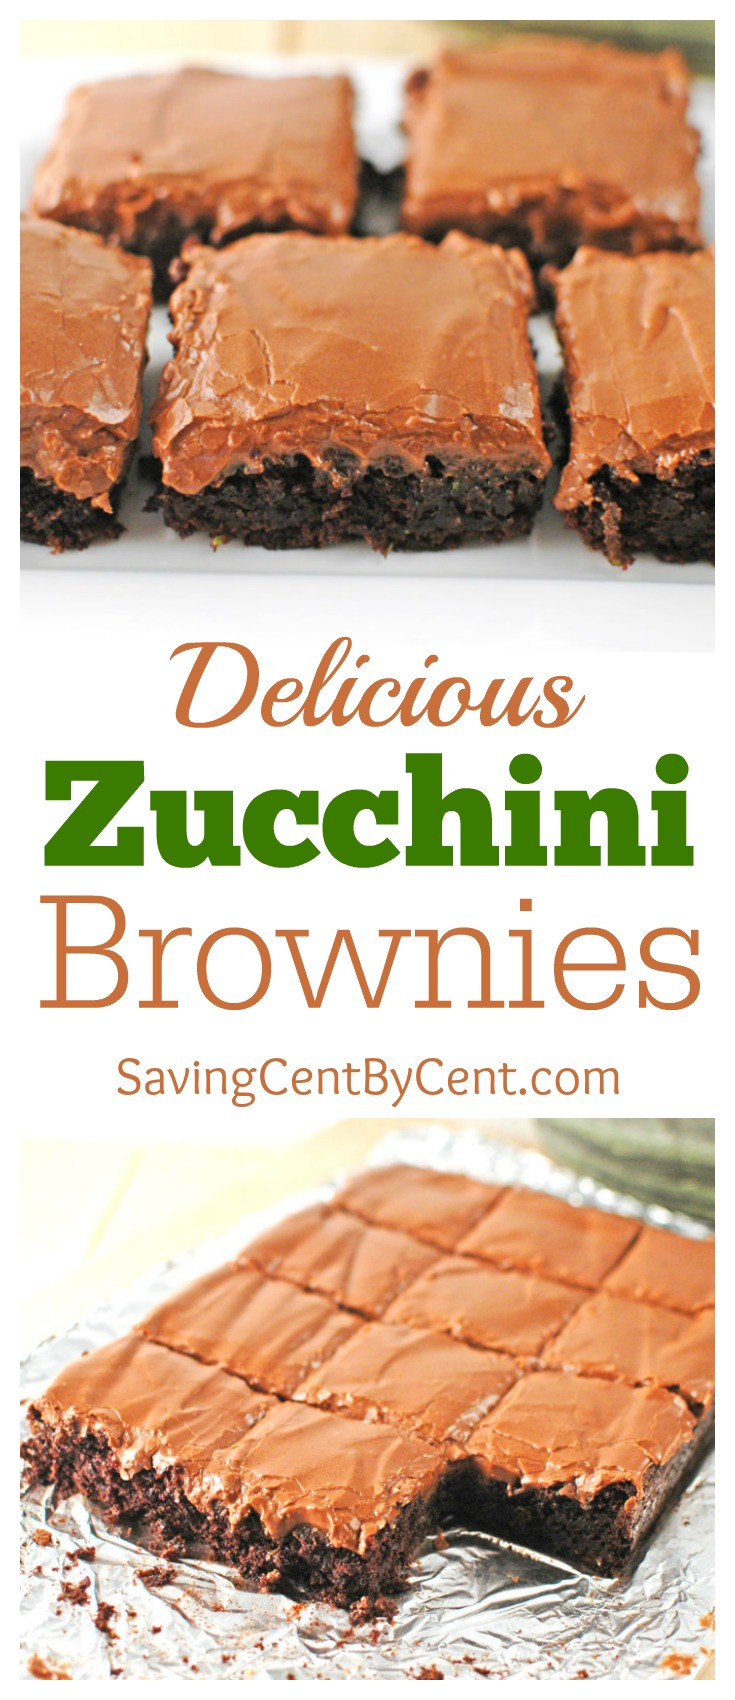 Zucchini-Brownies-Collage.jpg